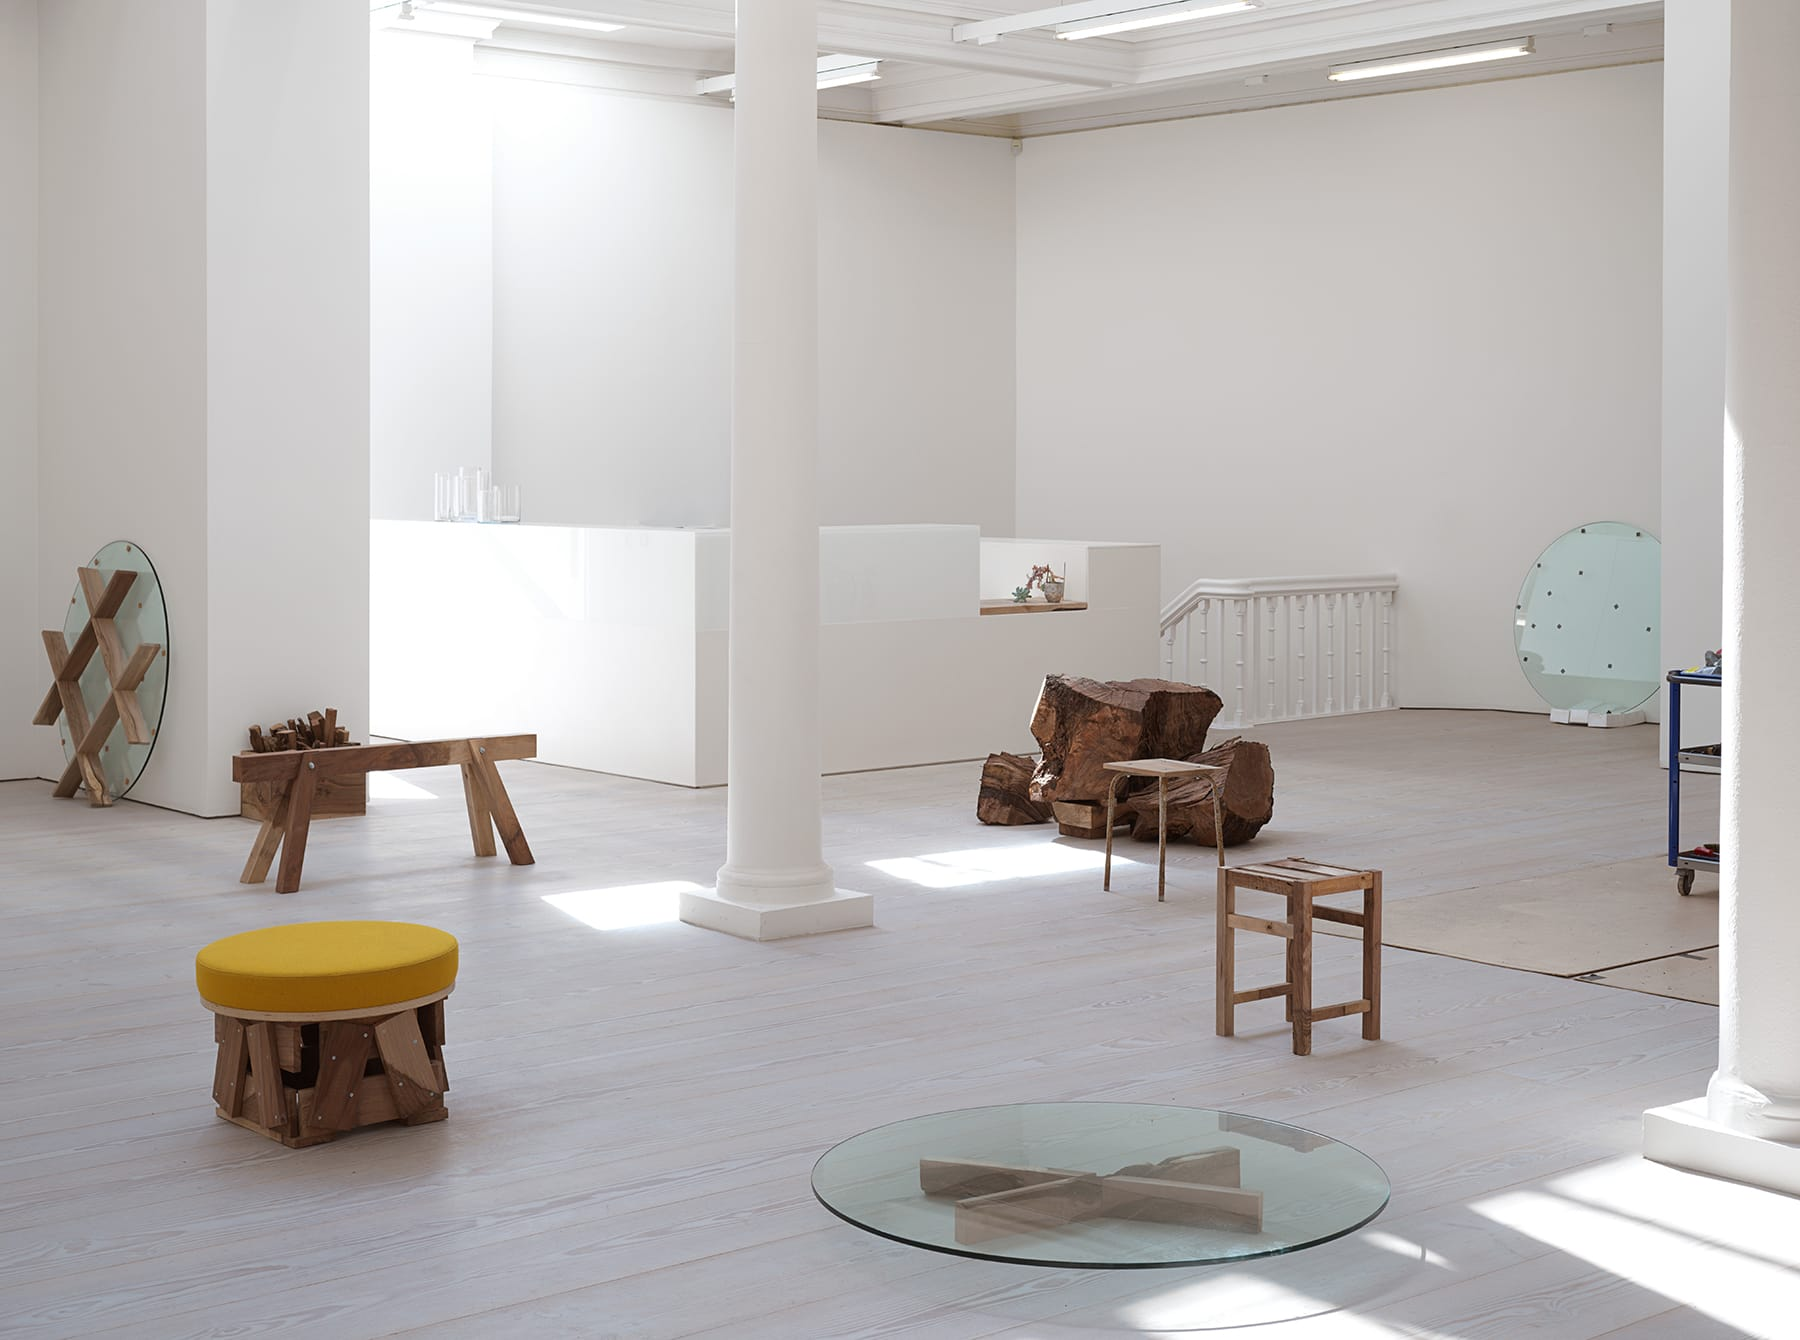 Gallery filled with various wooden furniture.